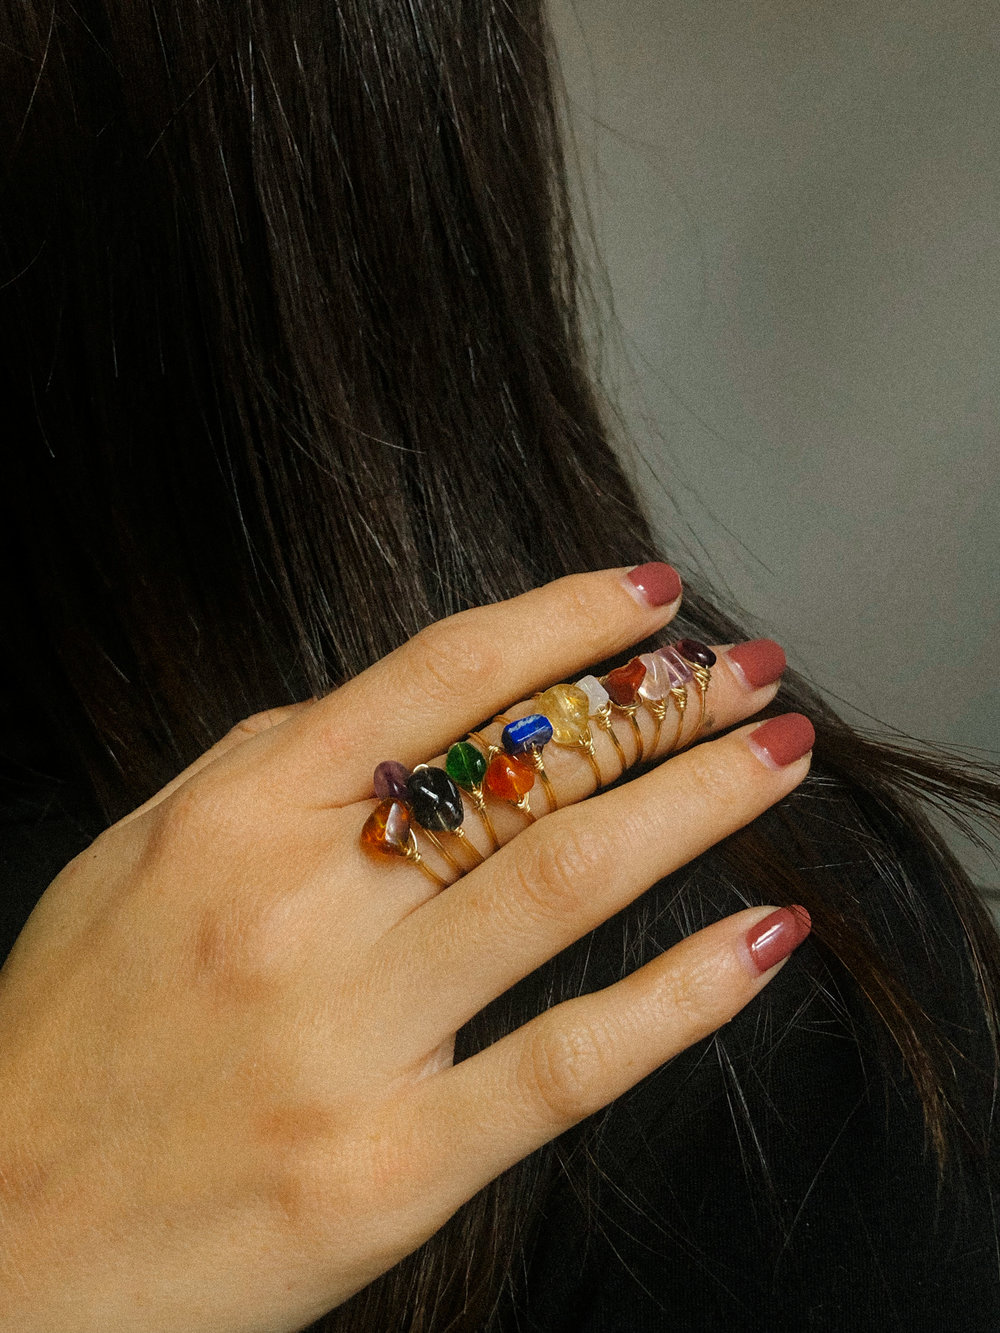 From our Zodiac gemstone ring collection